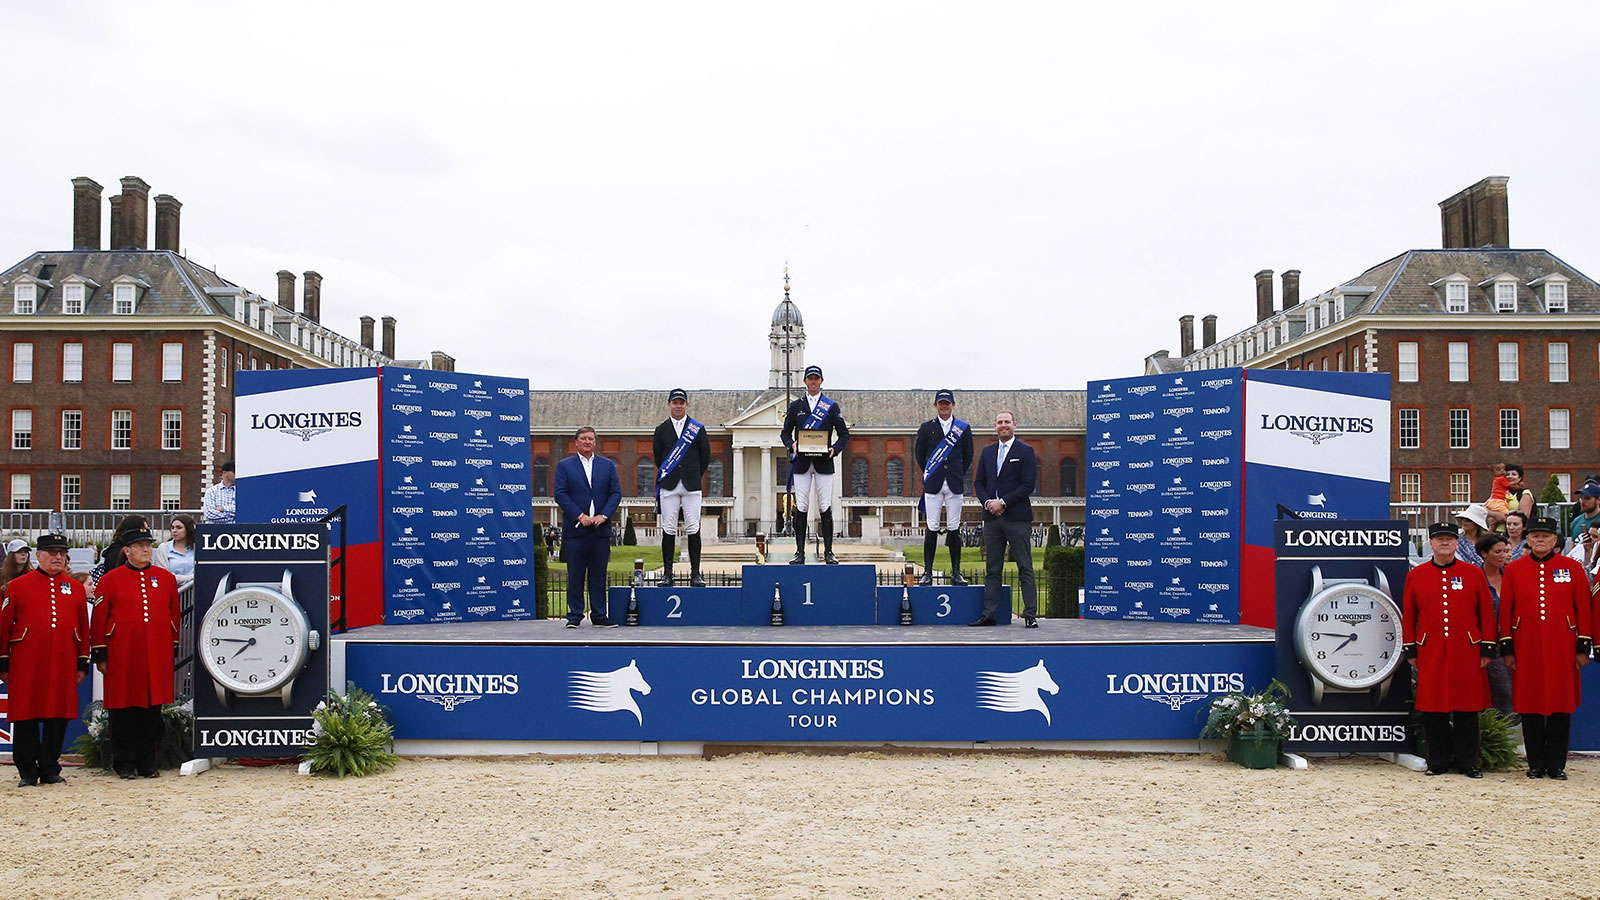 Longines Global Champions Tour of London; Jumping; 2019,pic4